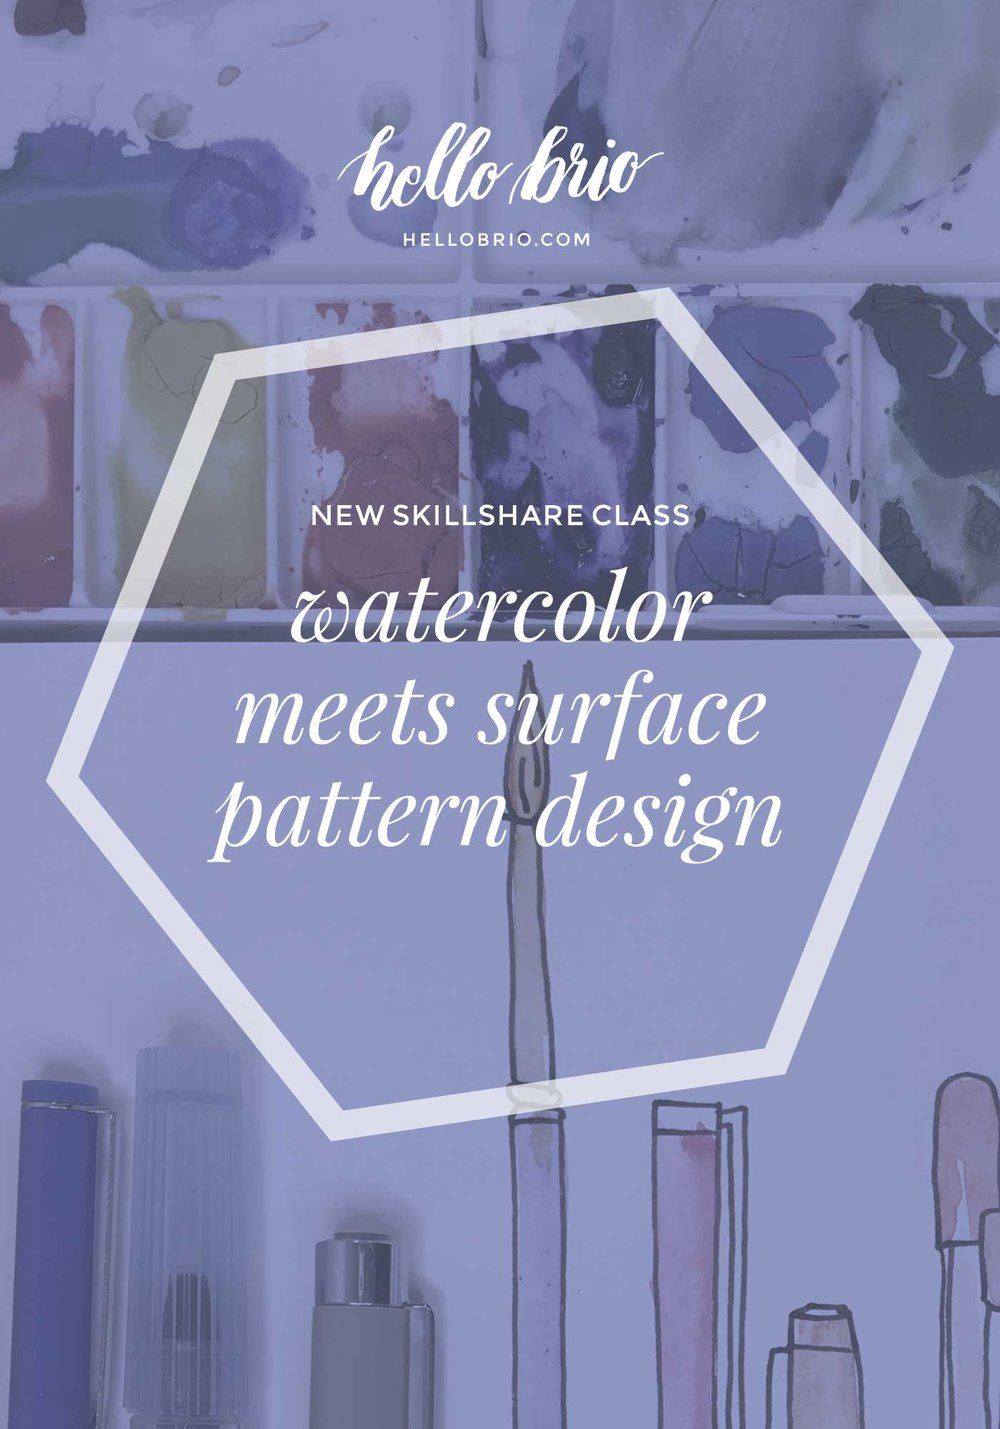 New Skillshare class: Watercolor meets surface pattern design